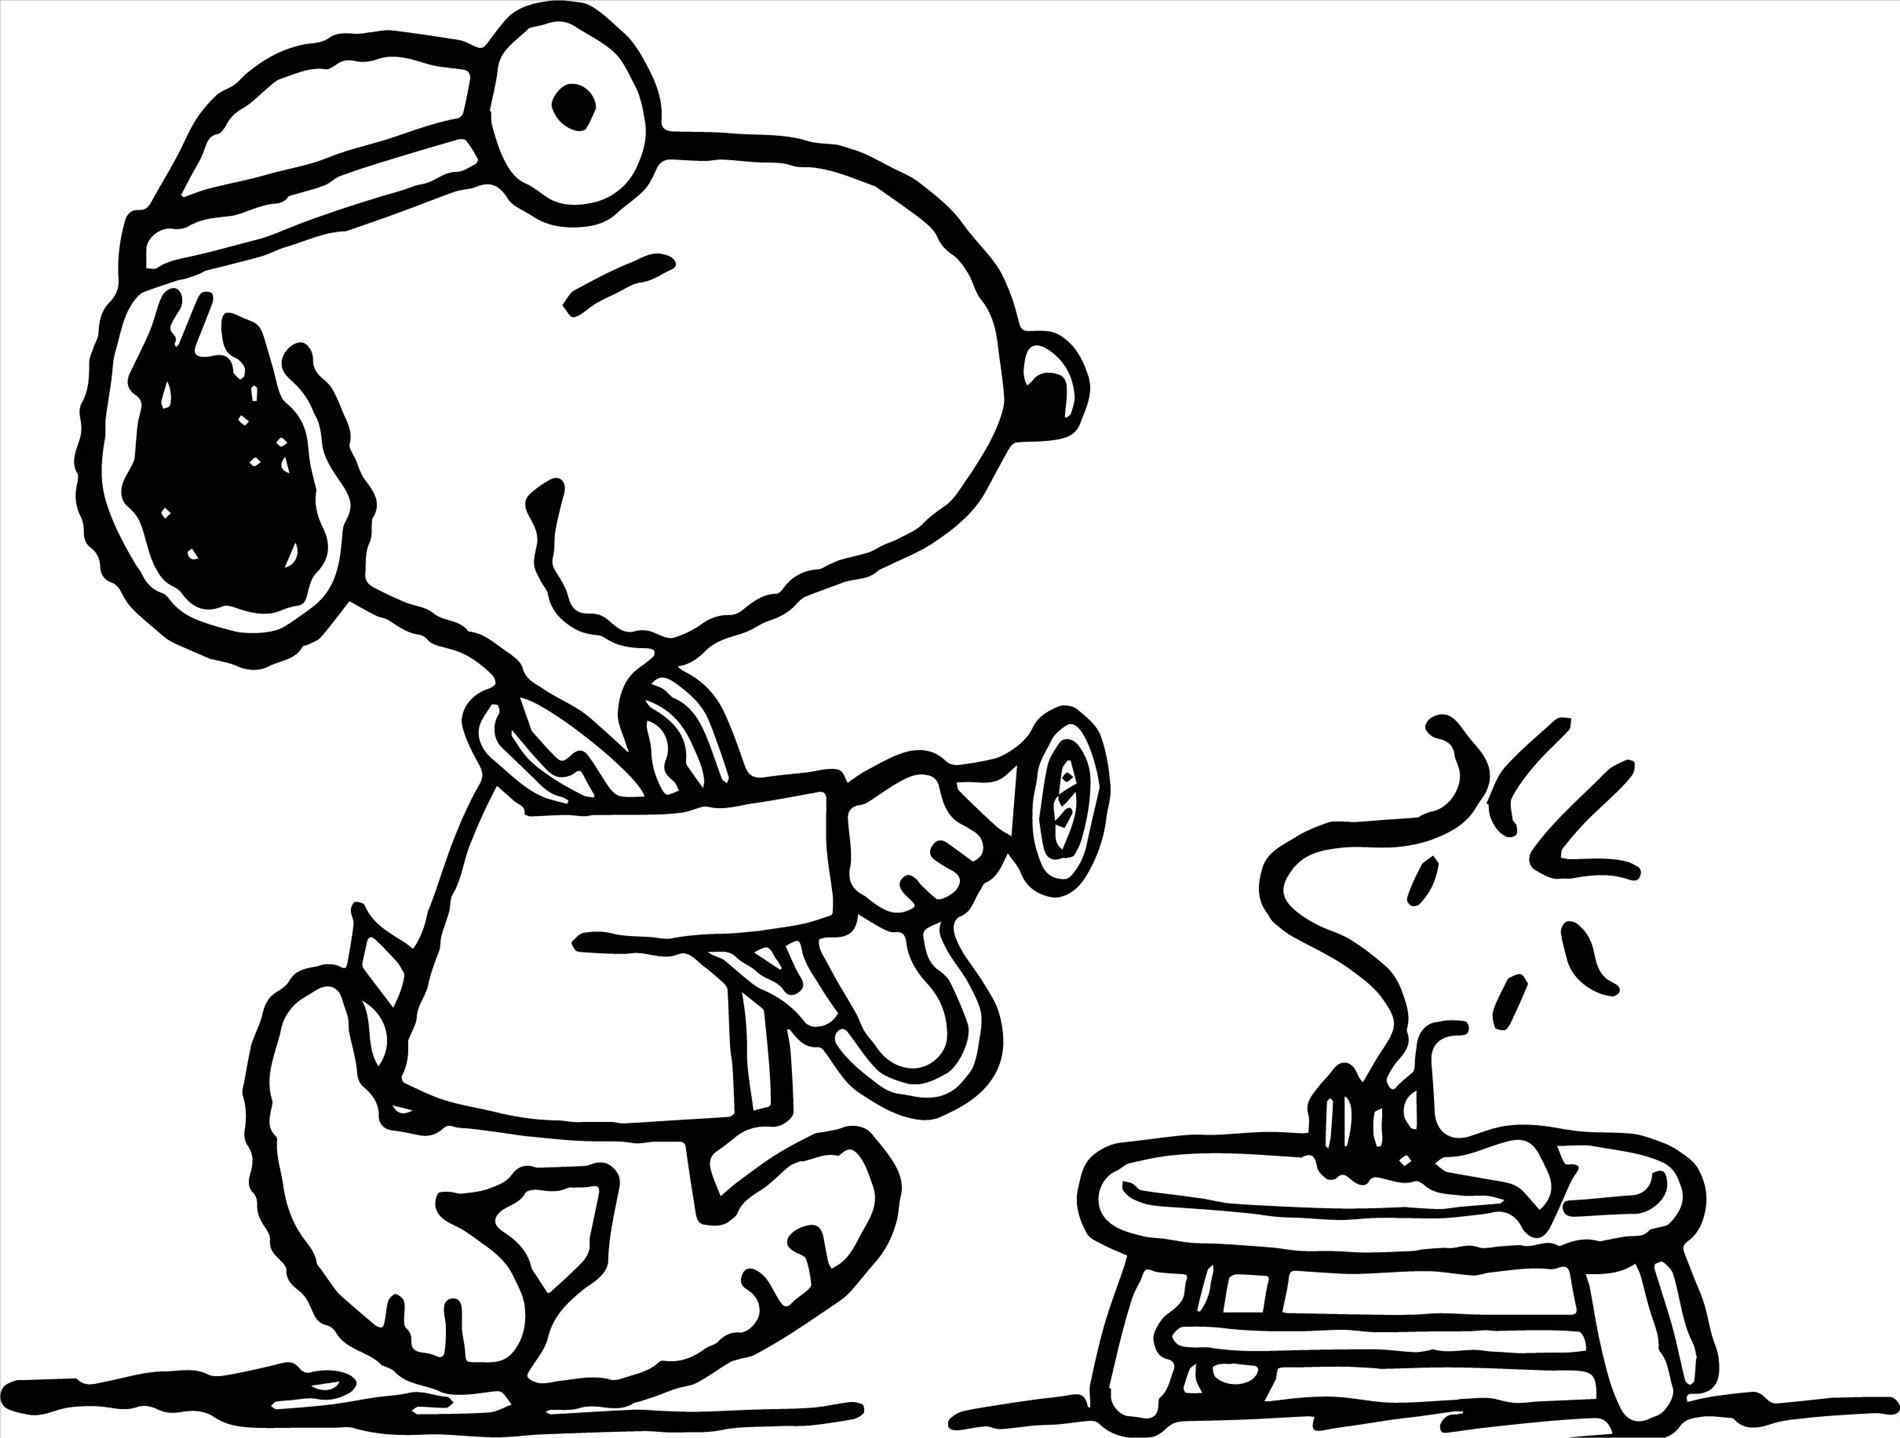 Snoopy And Woodstock Coloring Pages at GetDrawings | Free ...